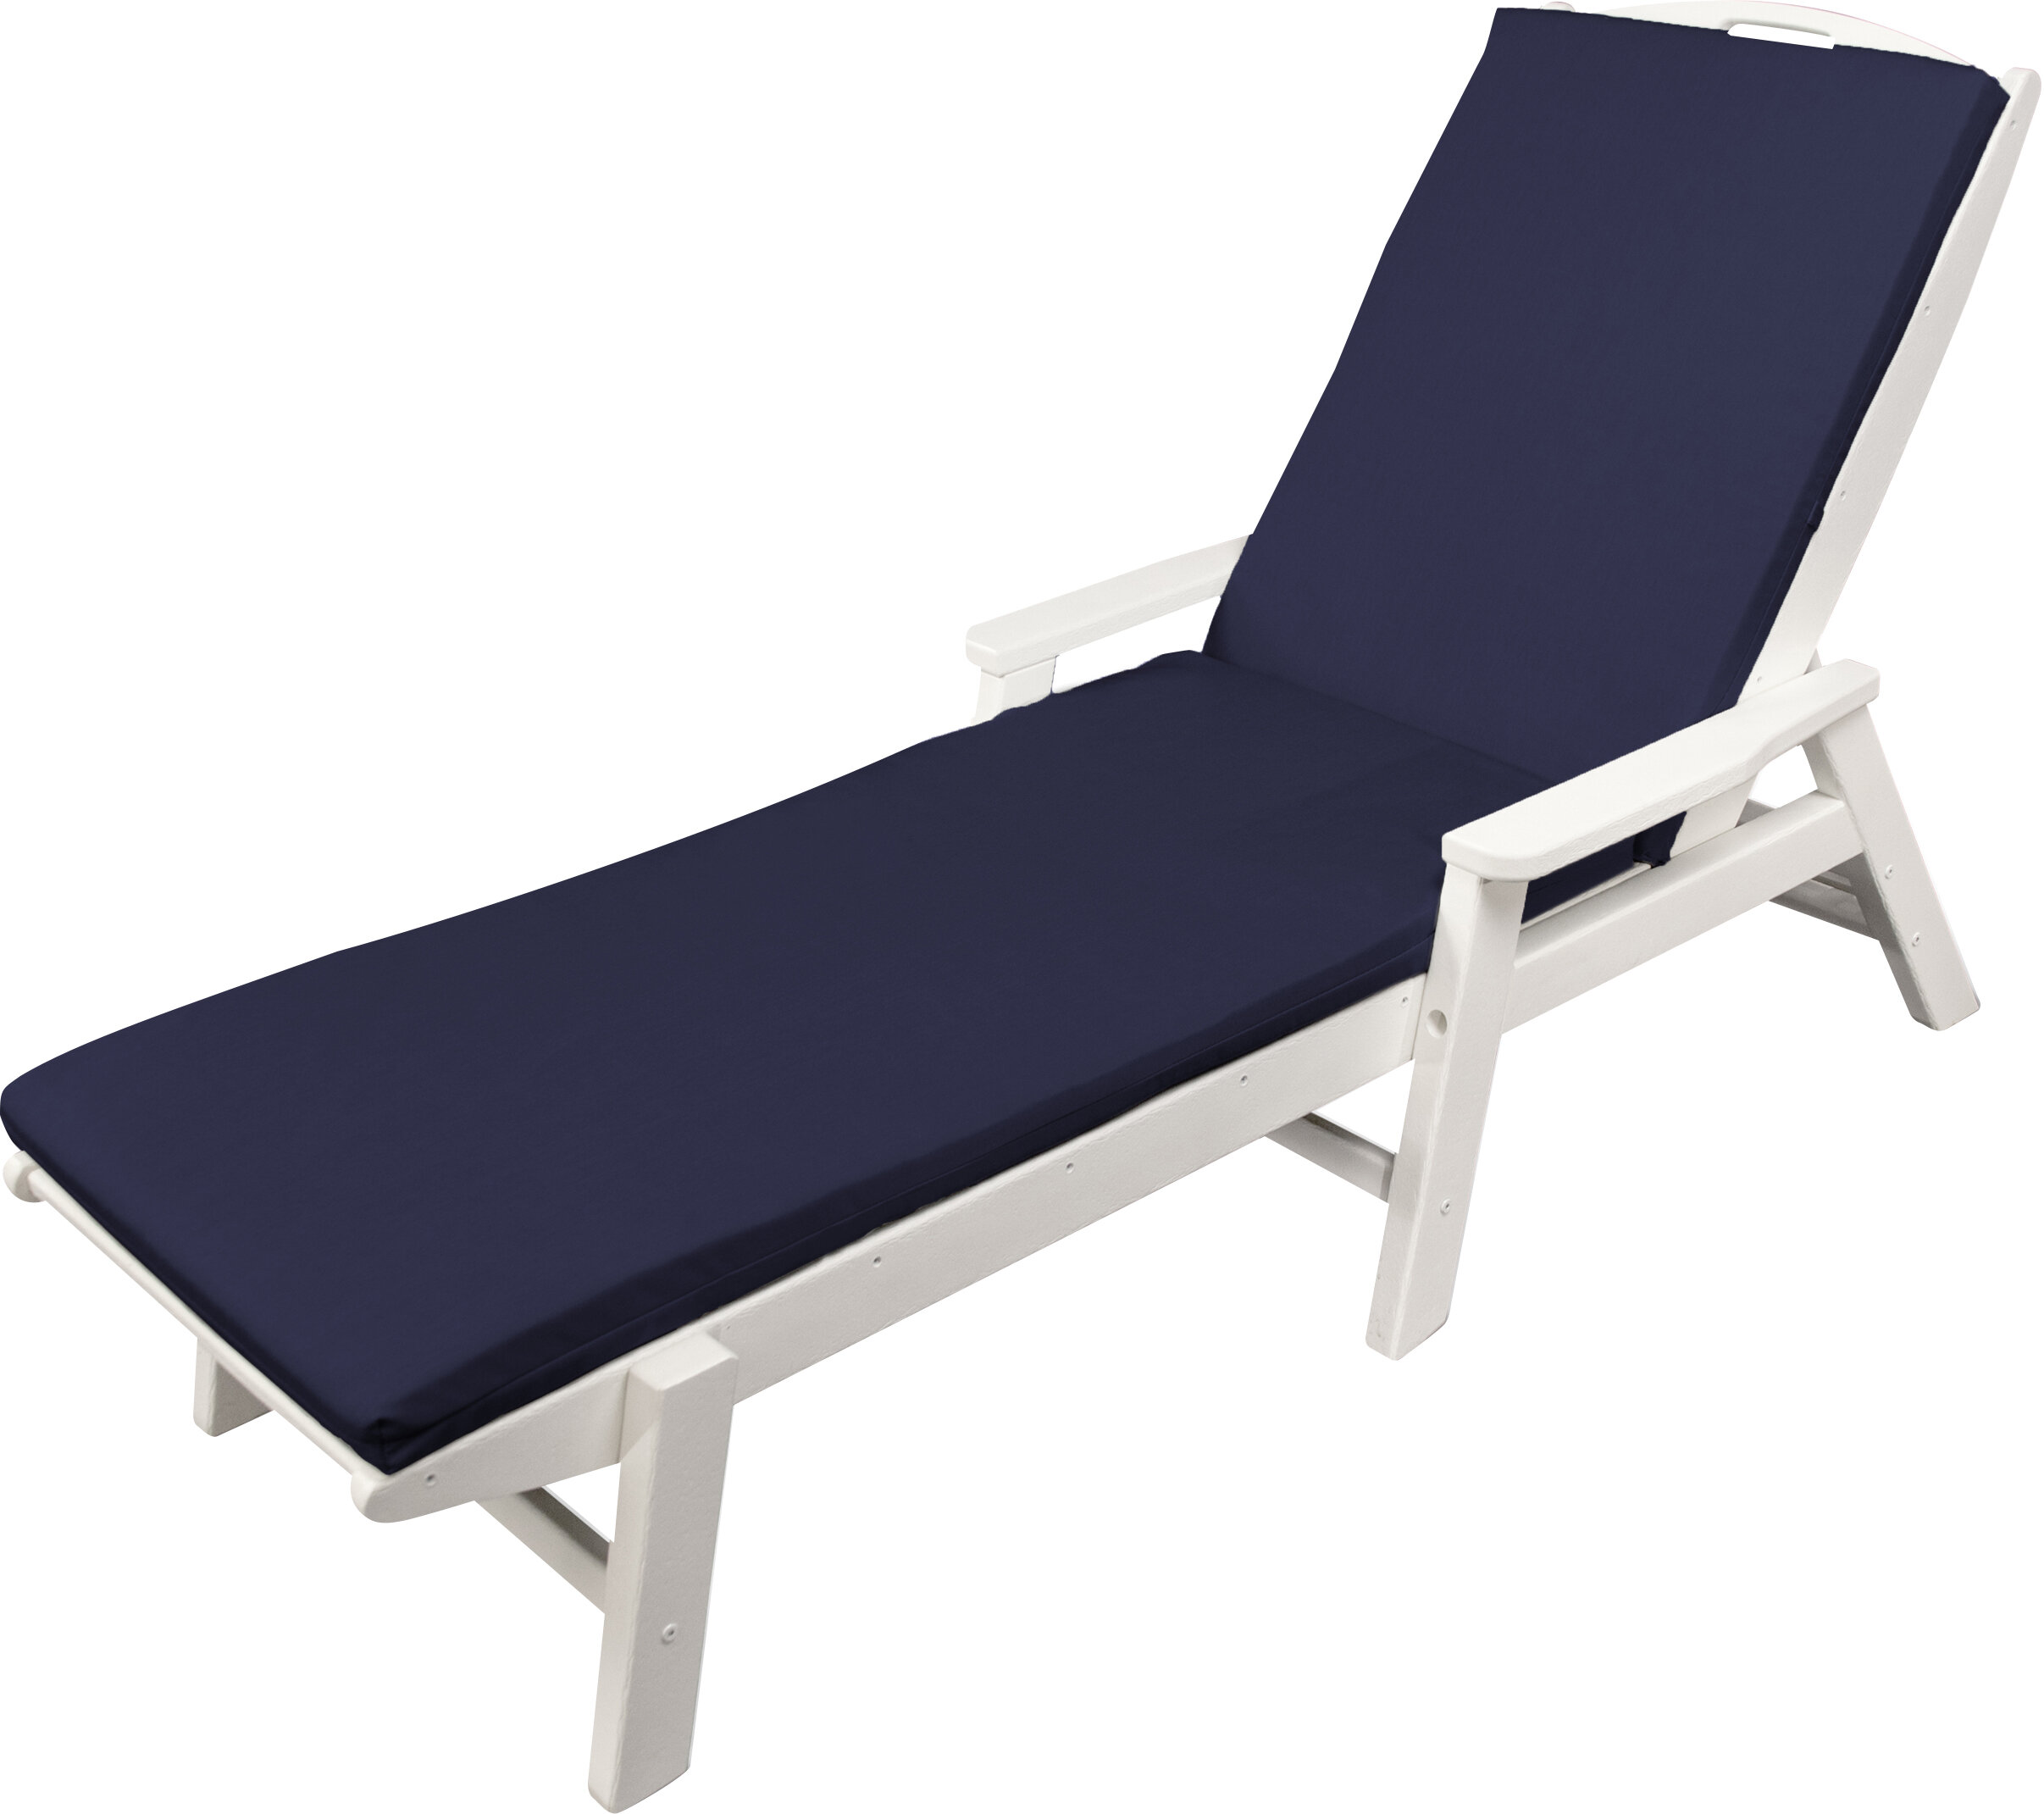 double stardust es chaise chair blasco gandia modern outdoor cavallet lounge escavallet